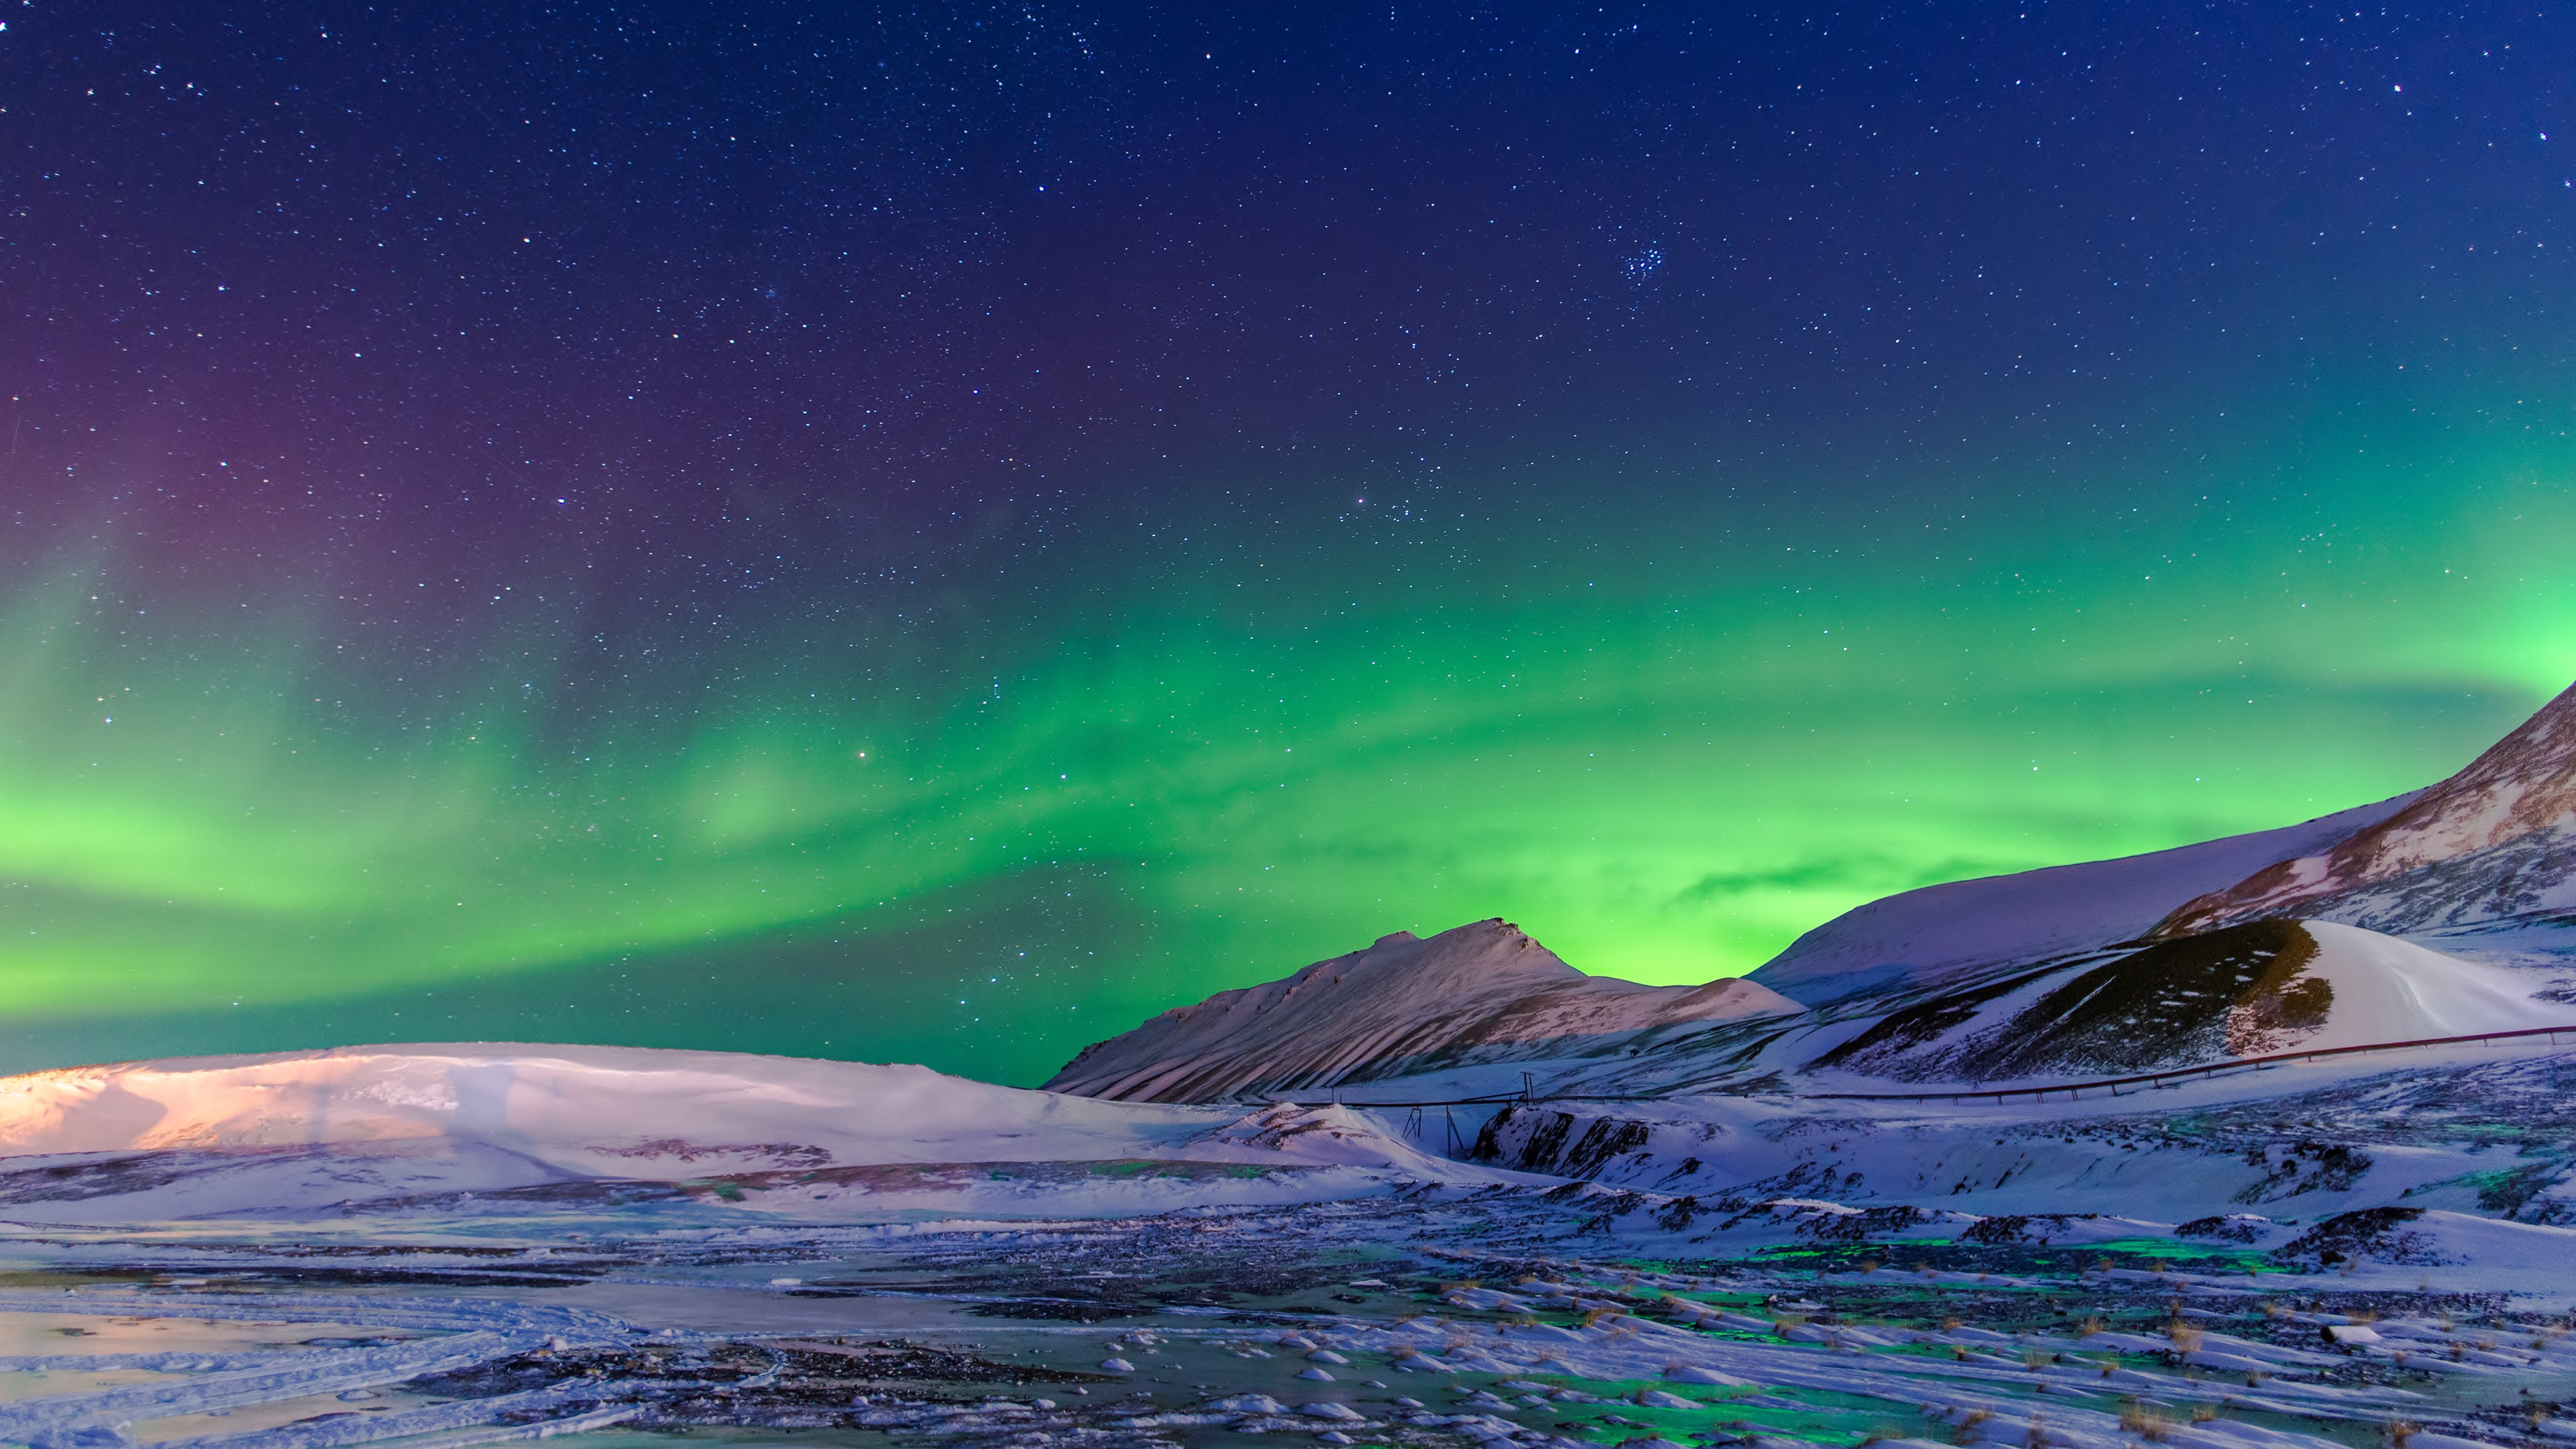 Aurora Borealis Winter 4K Wallpaper [3840x2160]